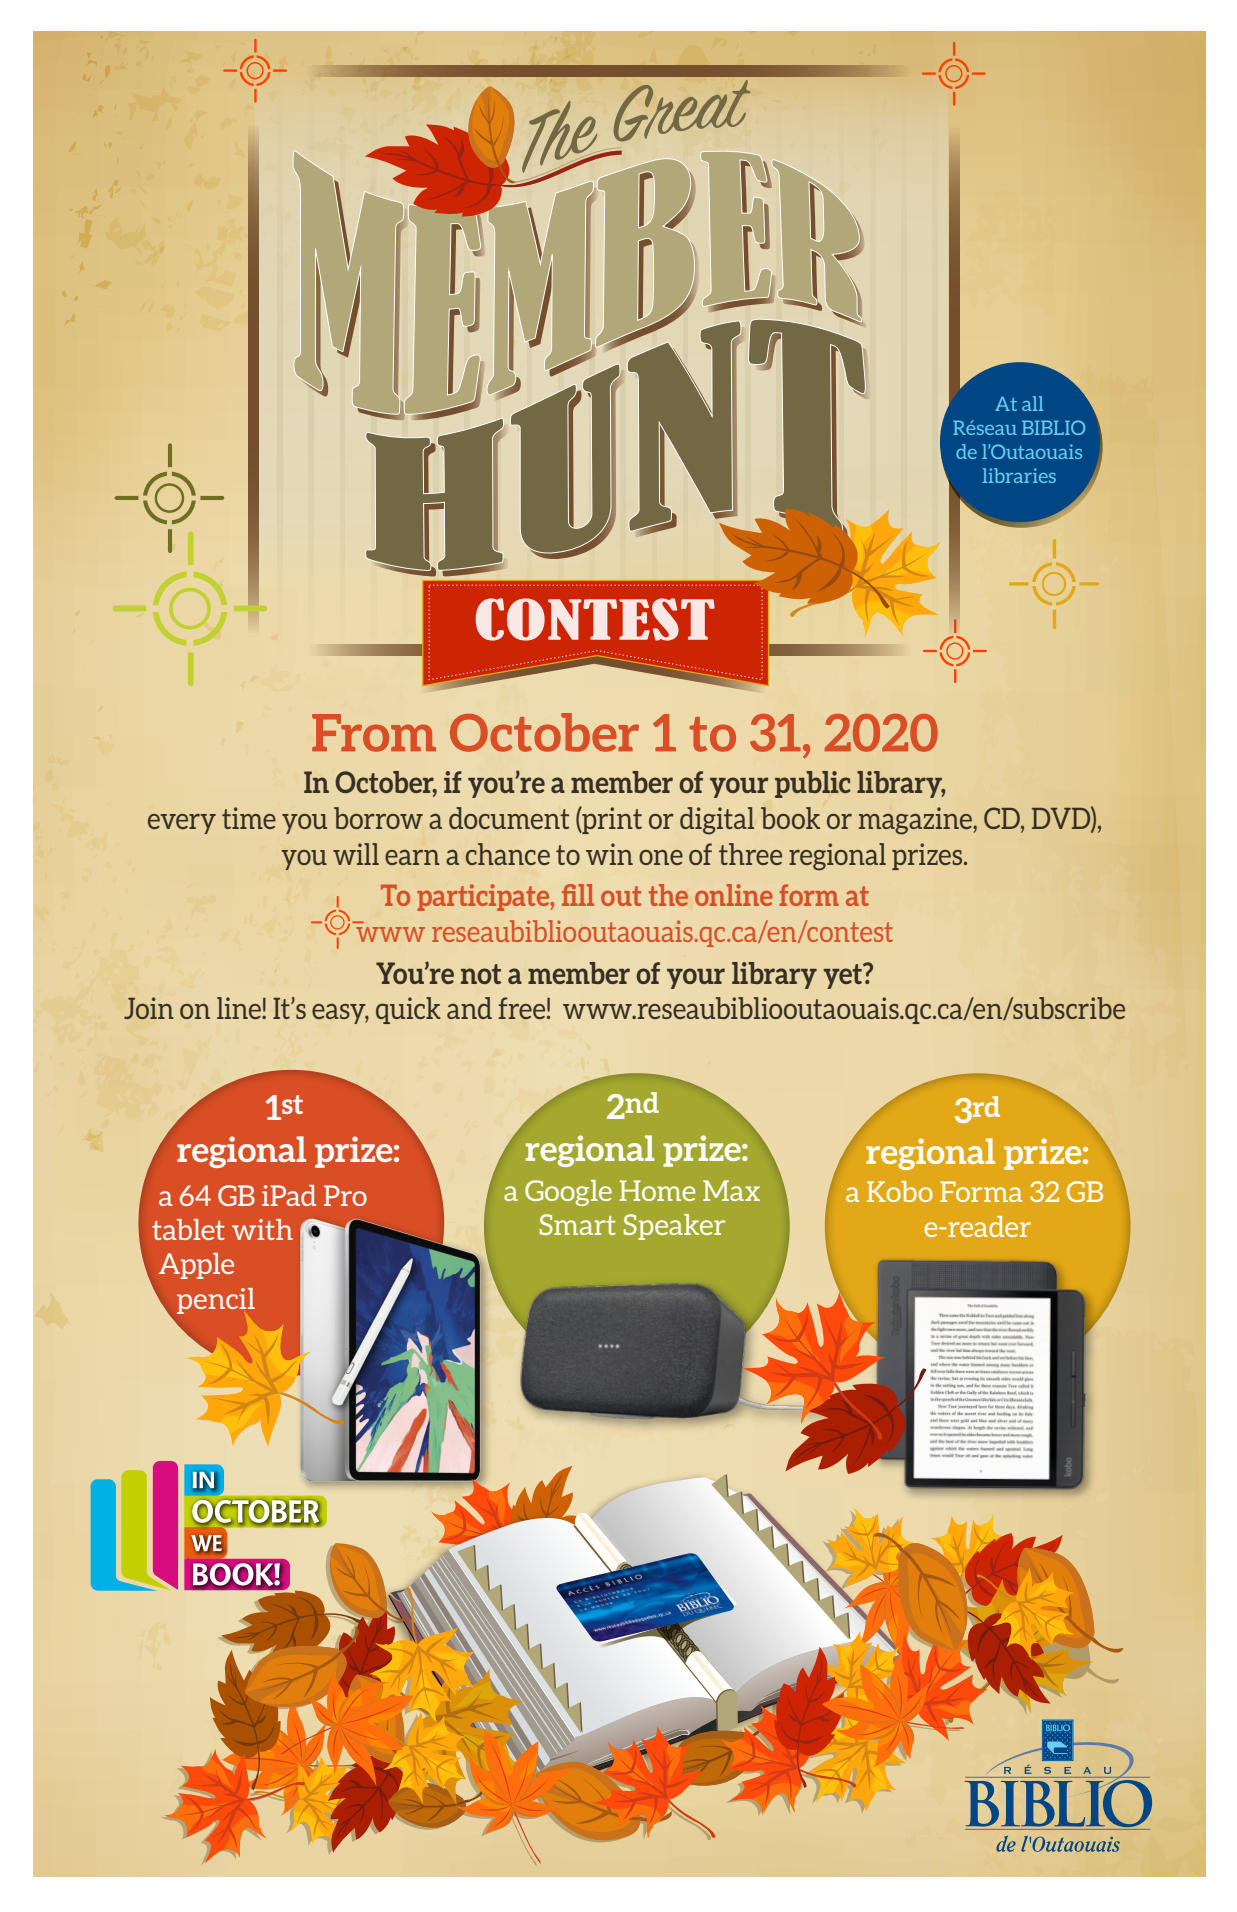 The great member hunt contest